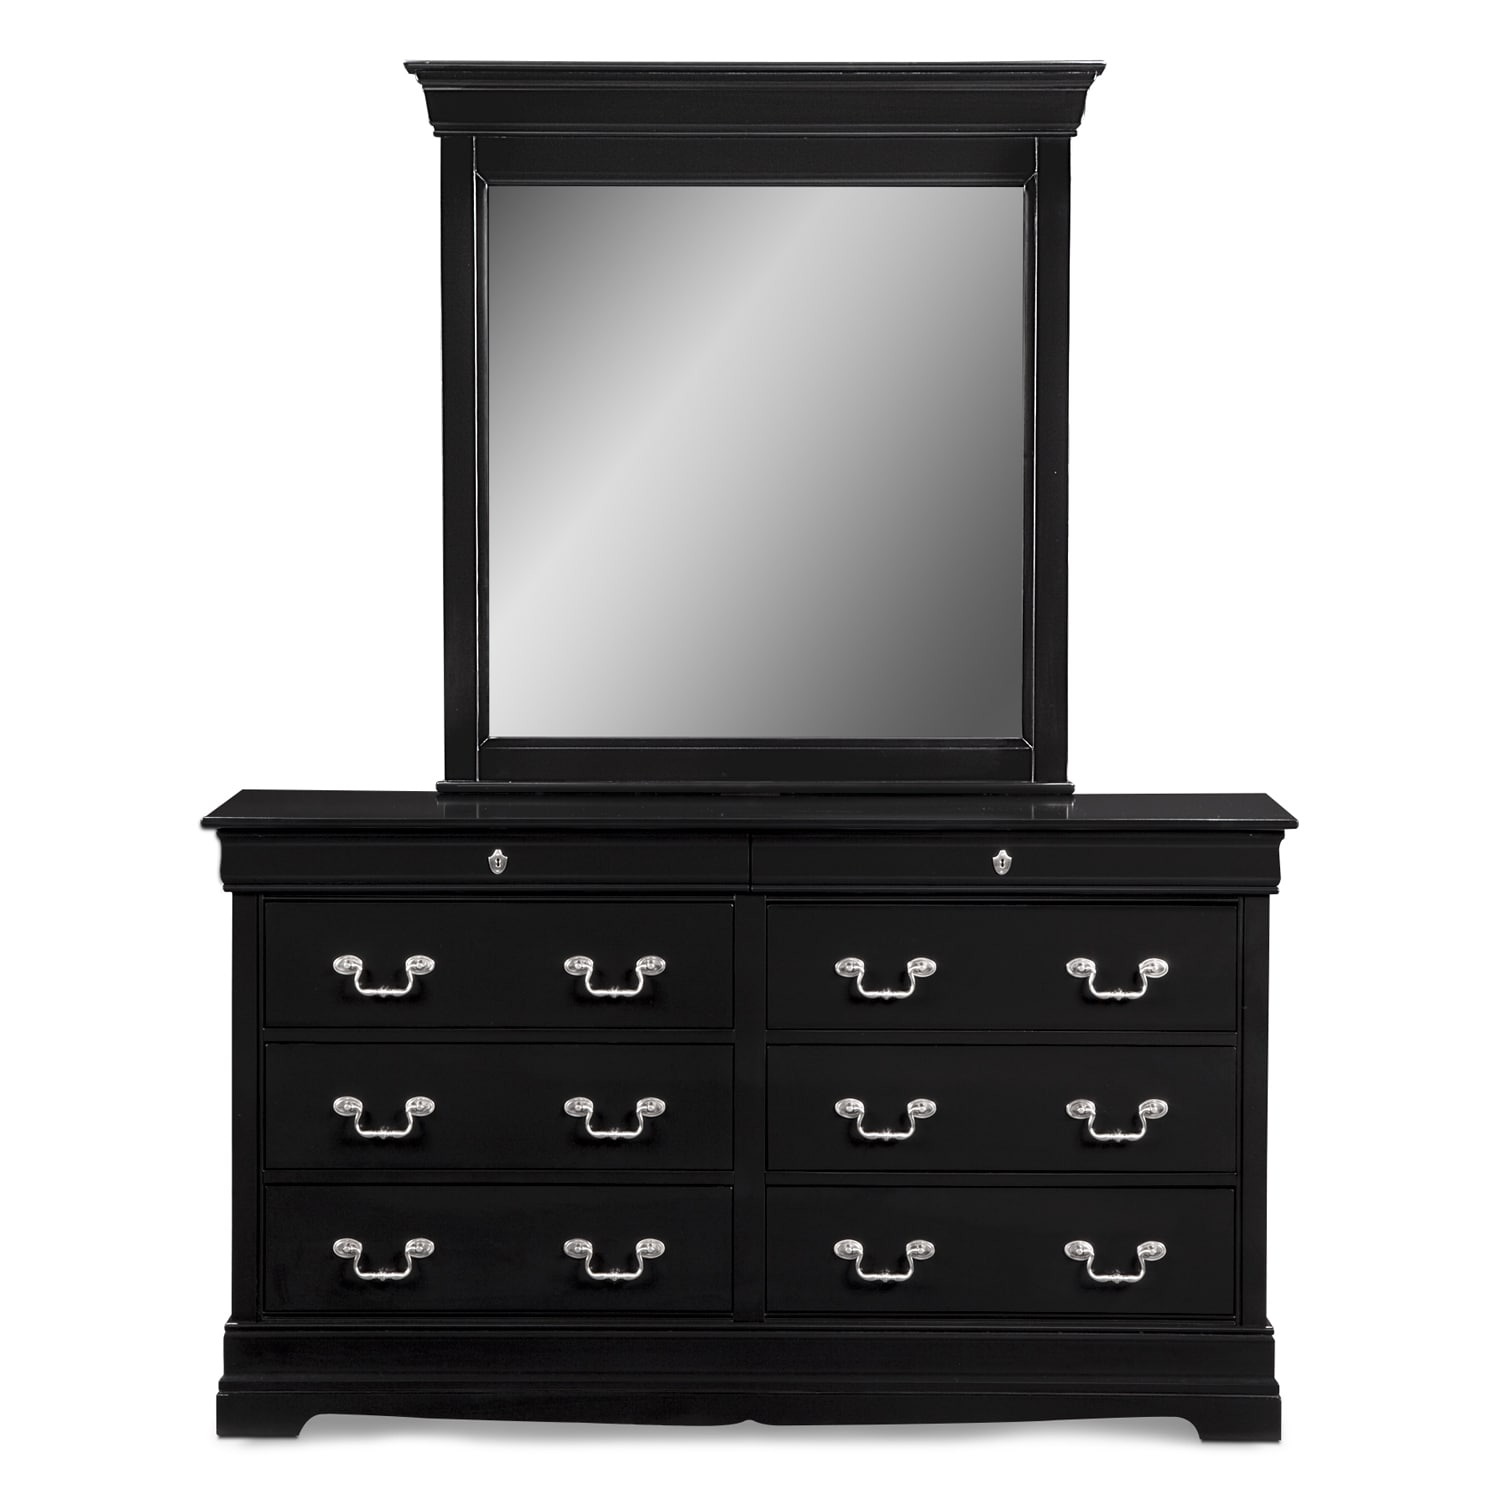 Neo Classic Dresser And Mirror Black Value City Furniture And Mattresses